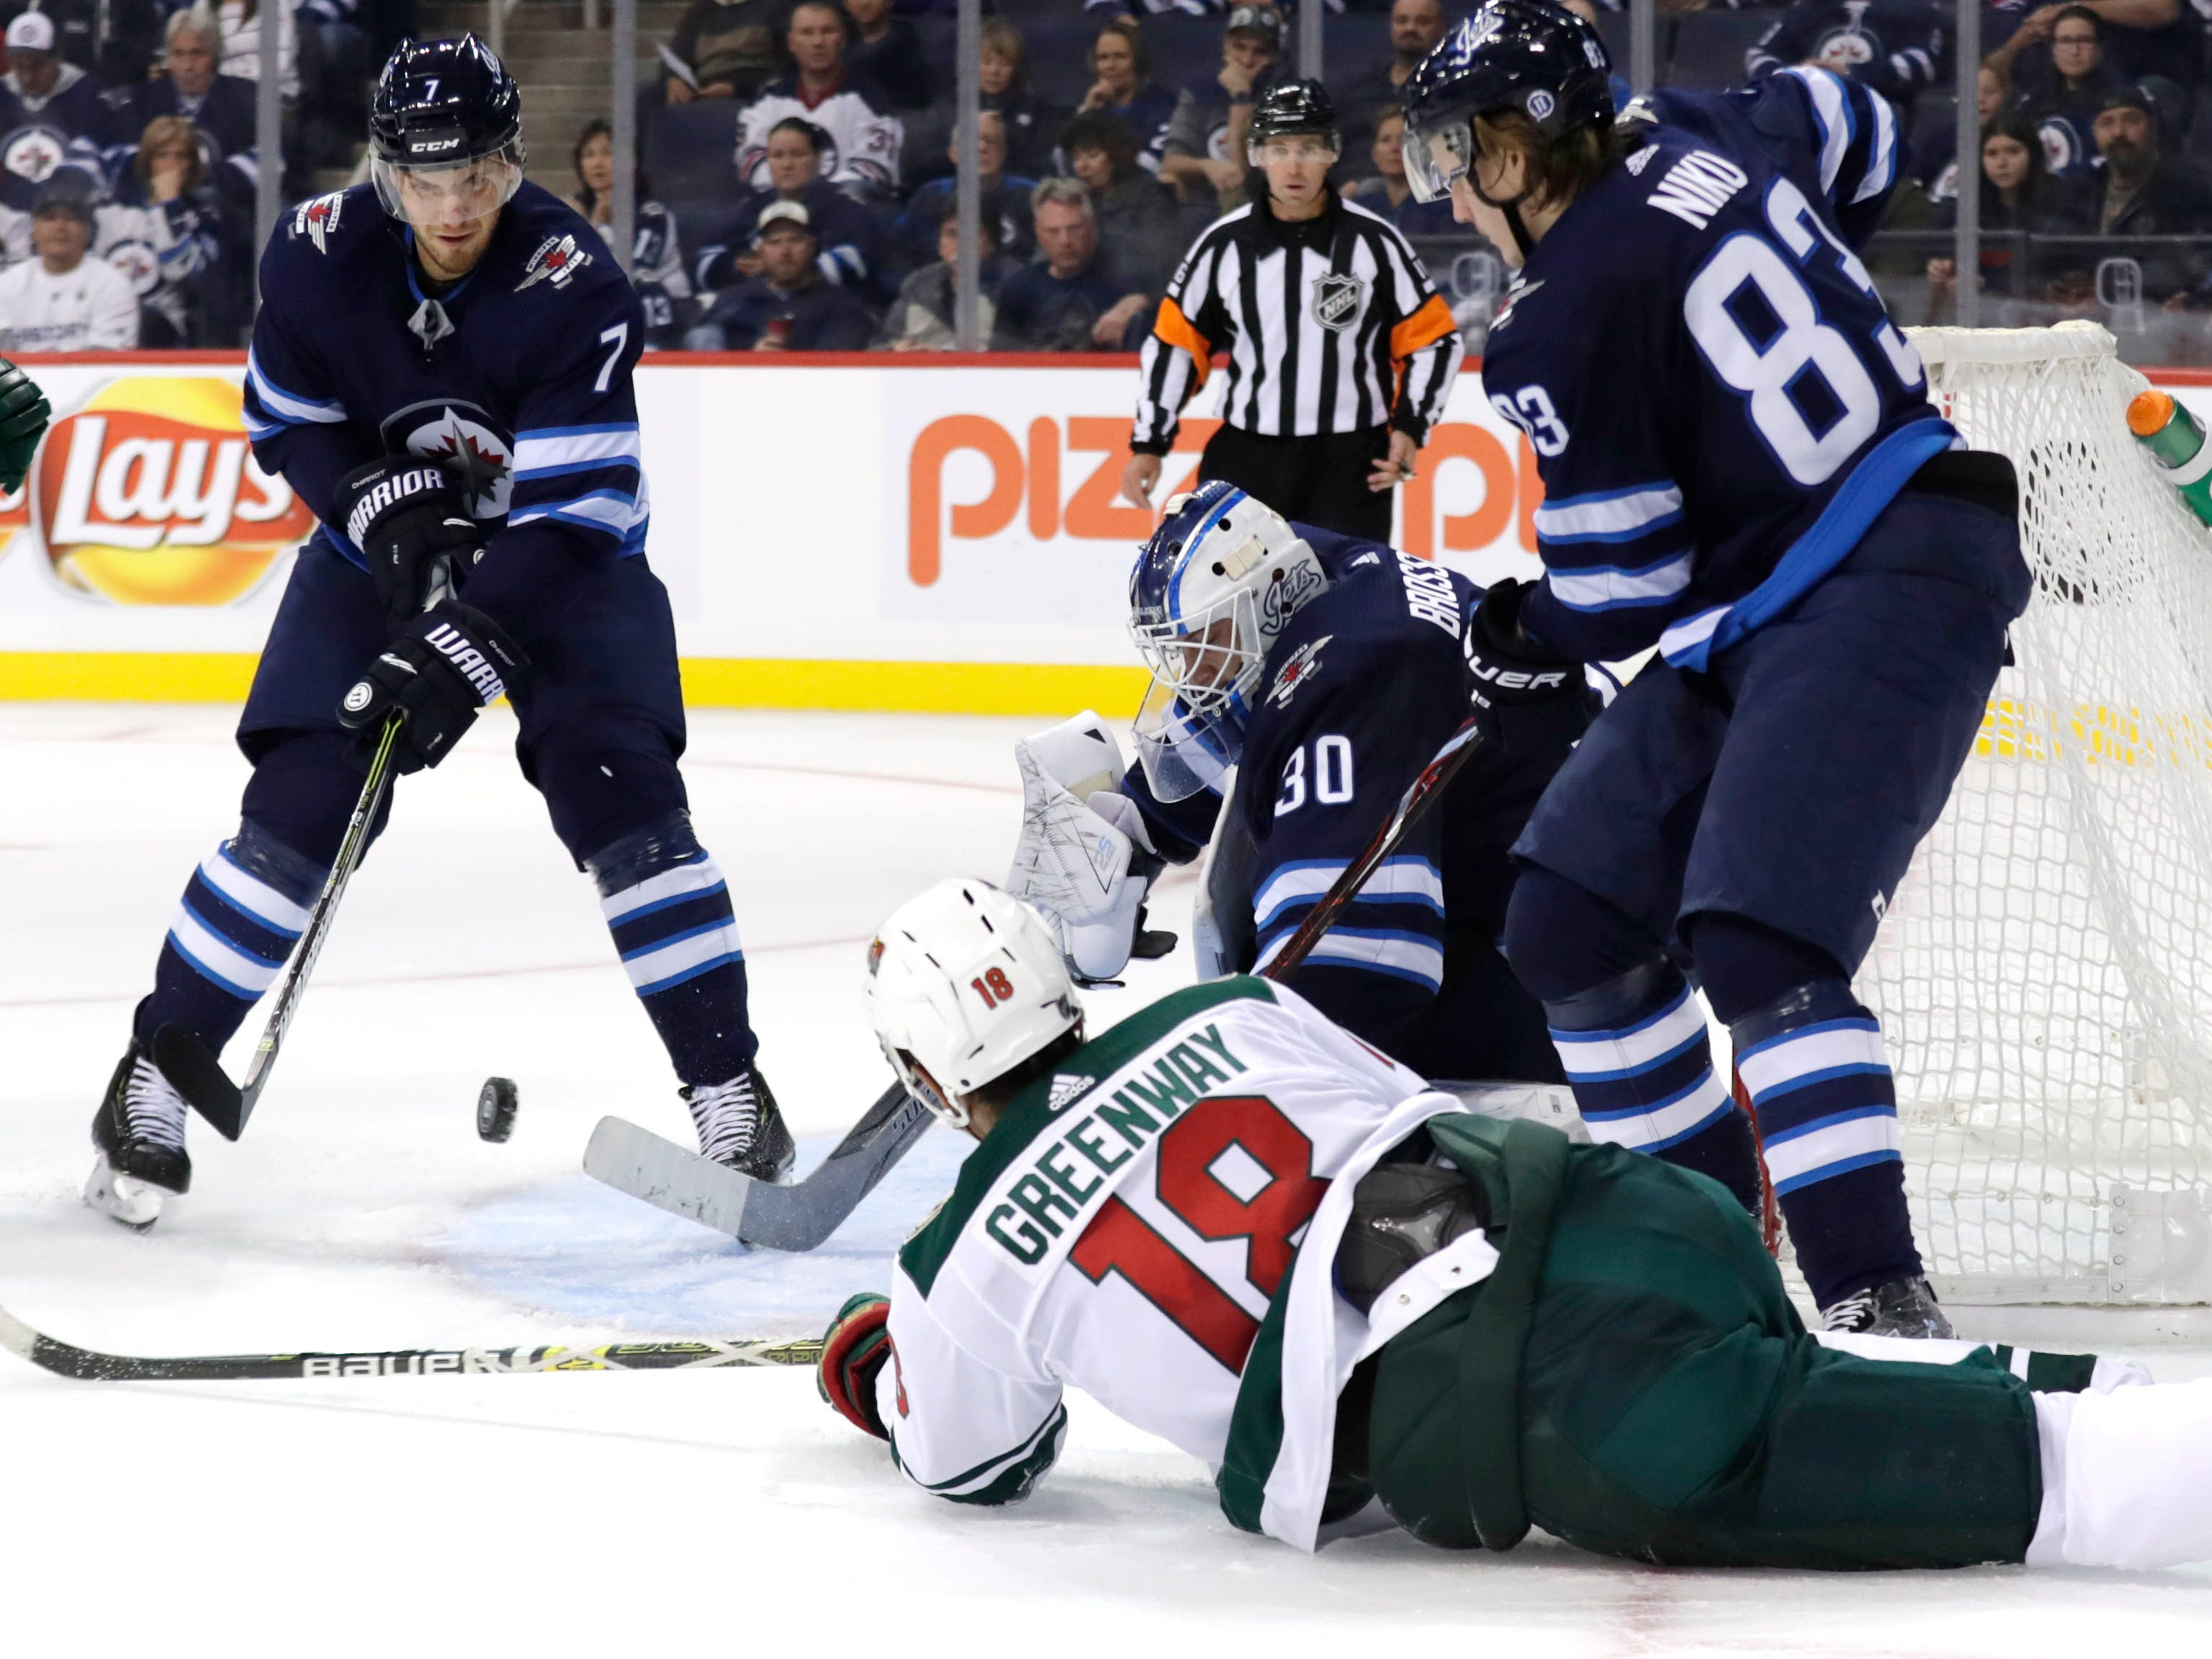 Sept. 17: Minnesota Wild left wing Jordan Greenway trips in front of Winnipeg Jets goaltender Laurent Brossoit.